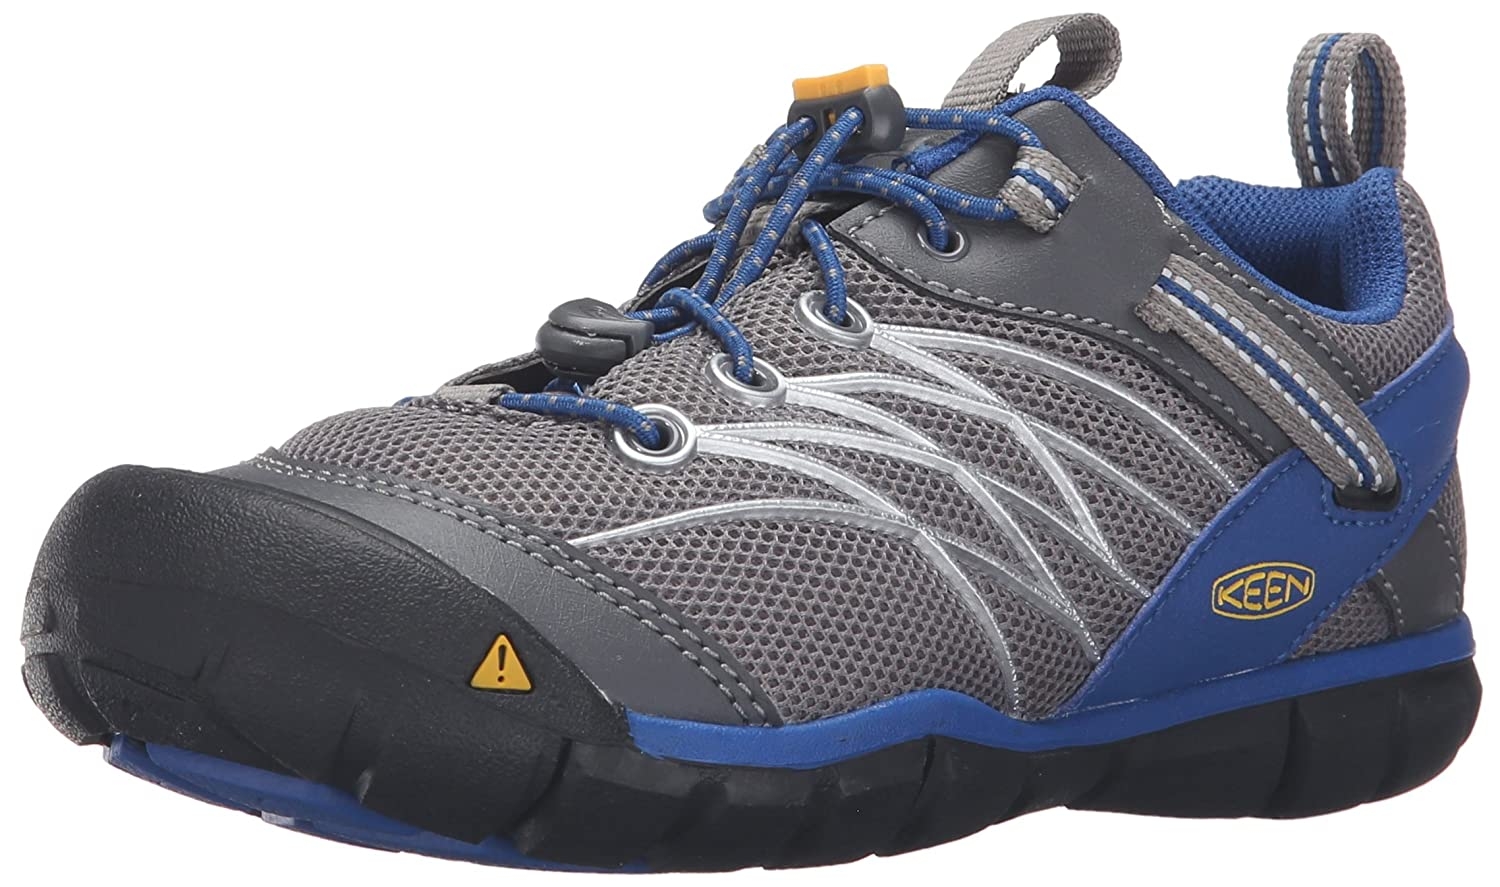 KEEN Chandler CNX Shoe B01921L4XO 8 Toddler US Toddler|Gargoyle/True Blue